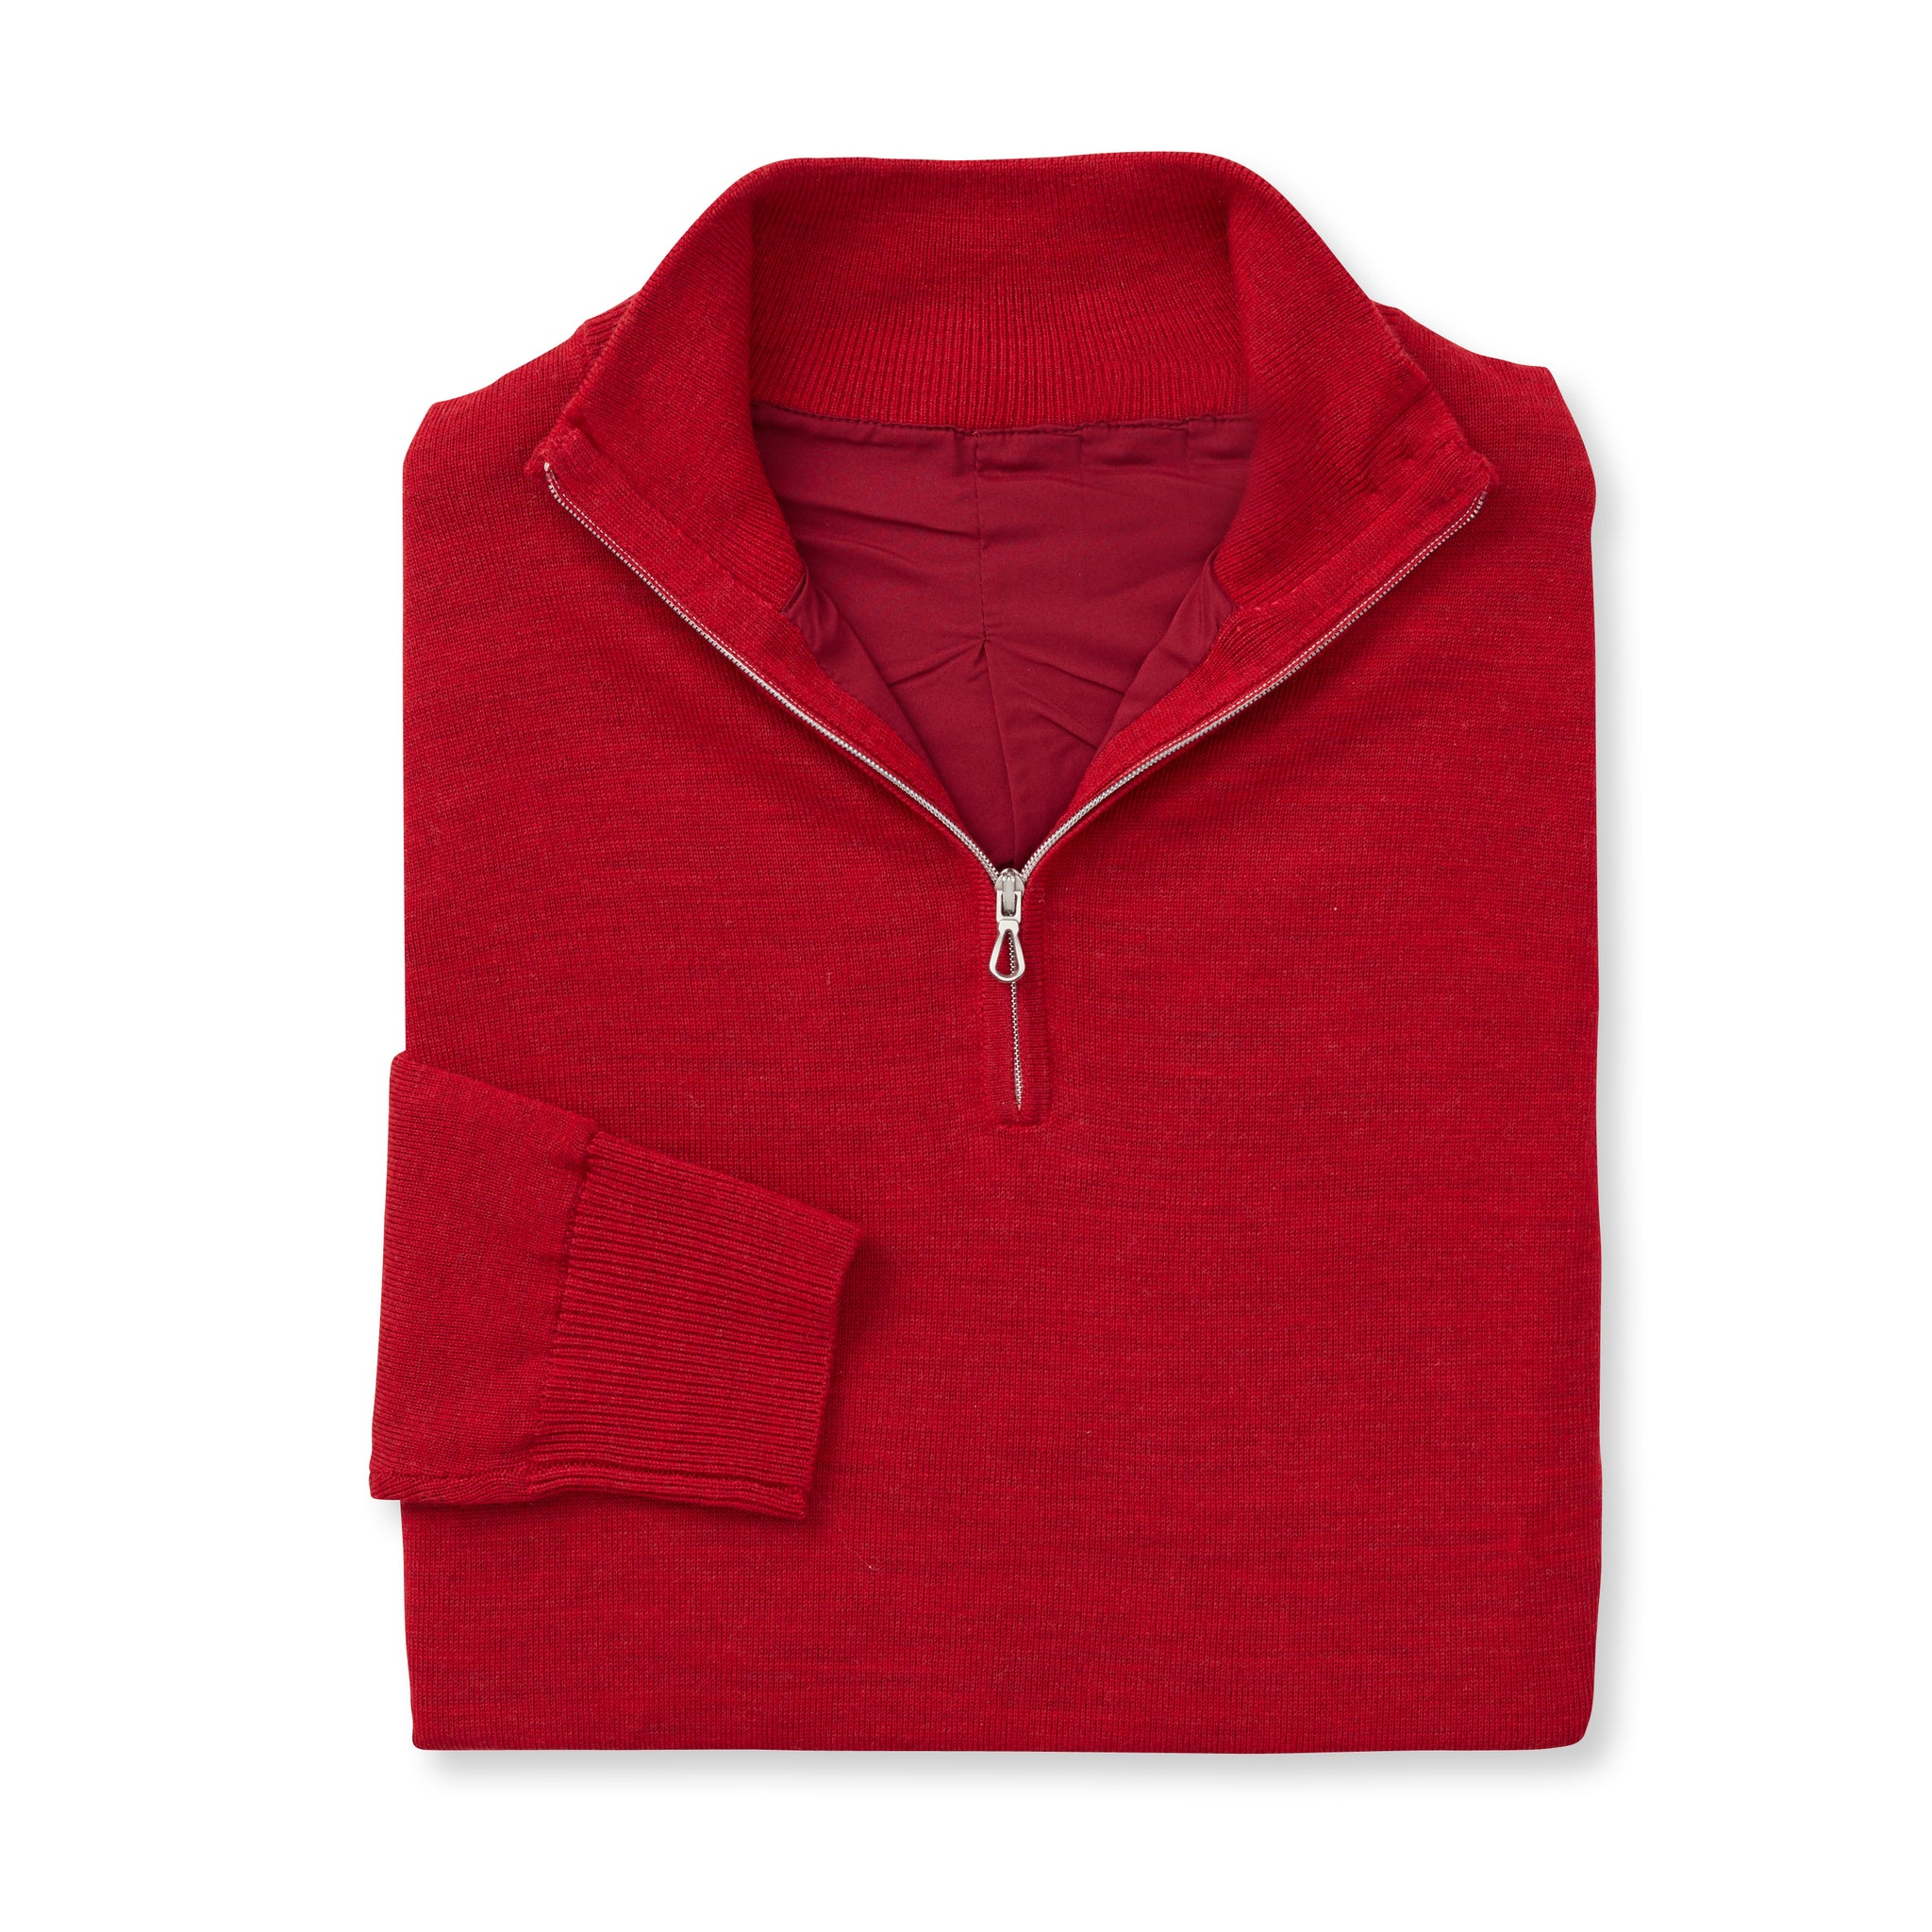 MERINO Wind Block Half-Zip Sweater - Crimson Heather IS75708HLS